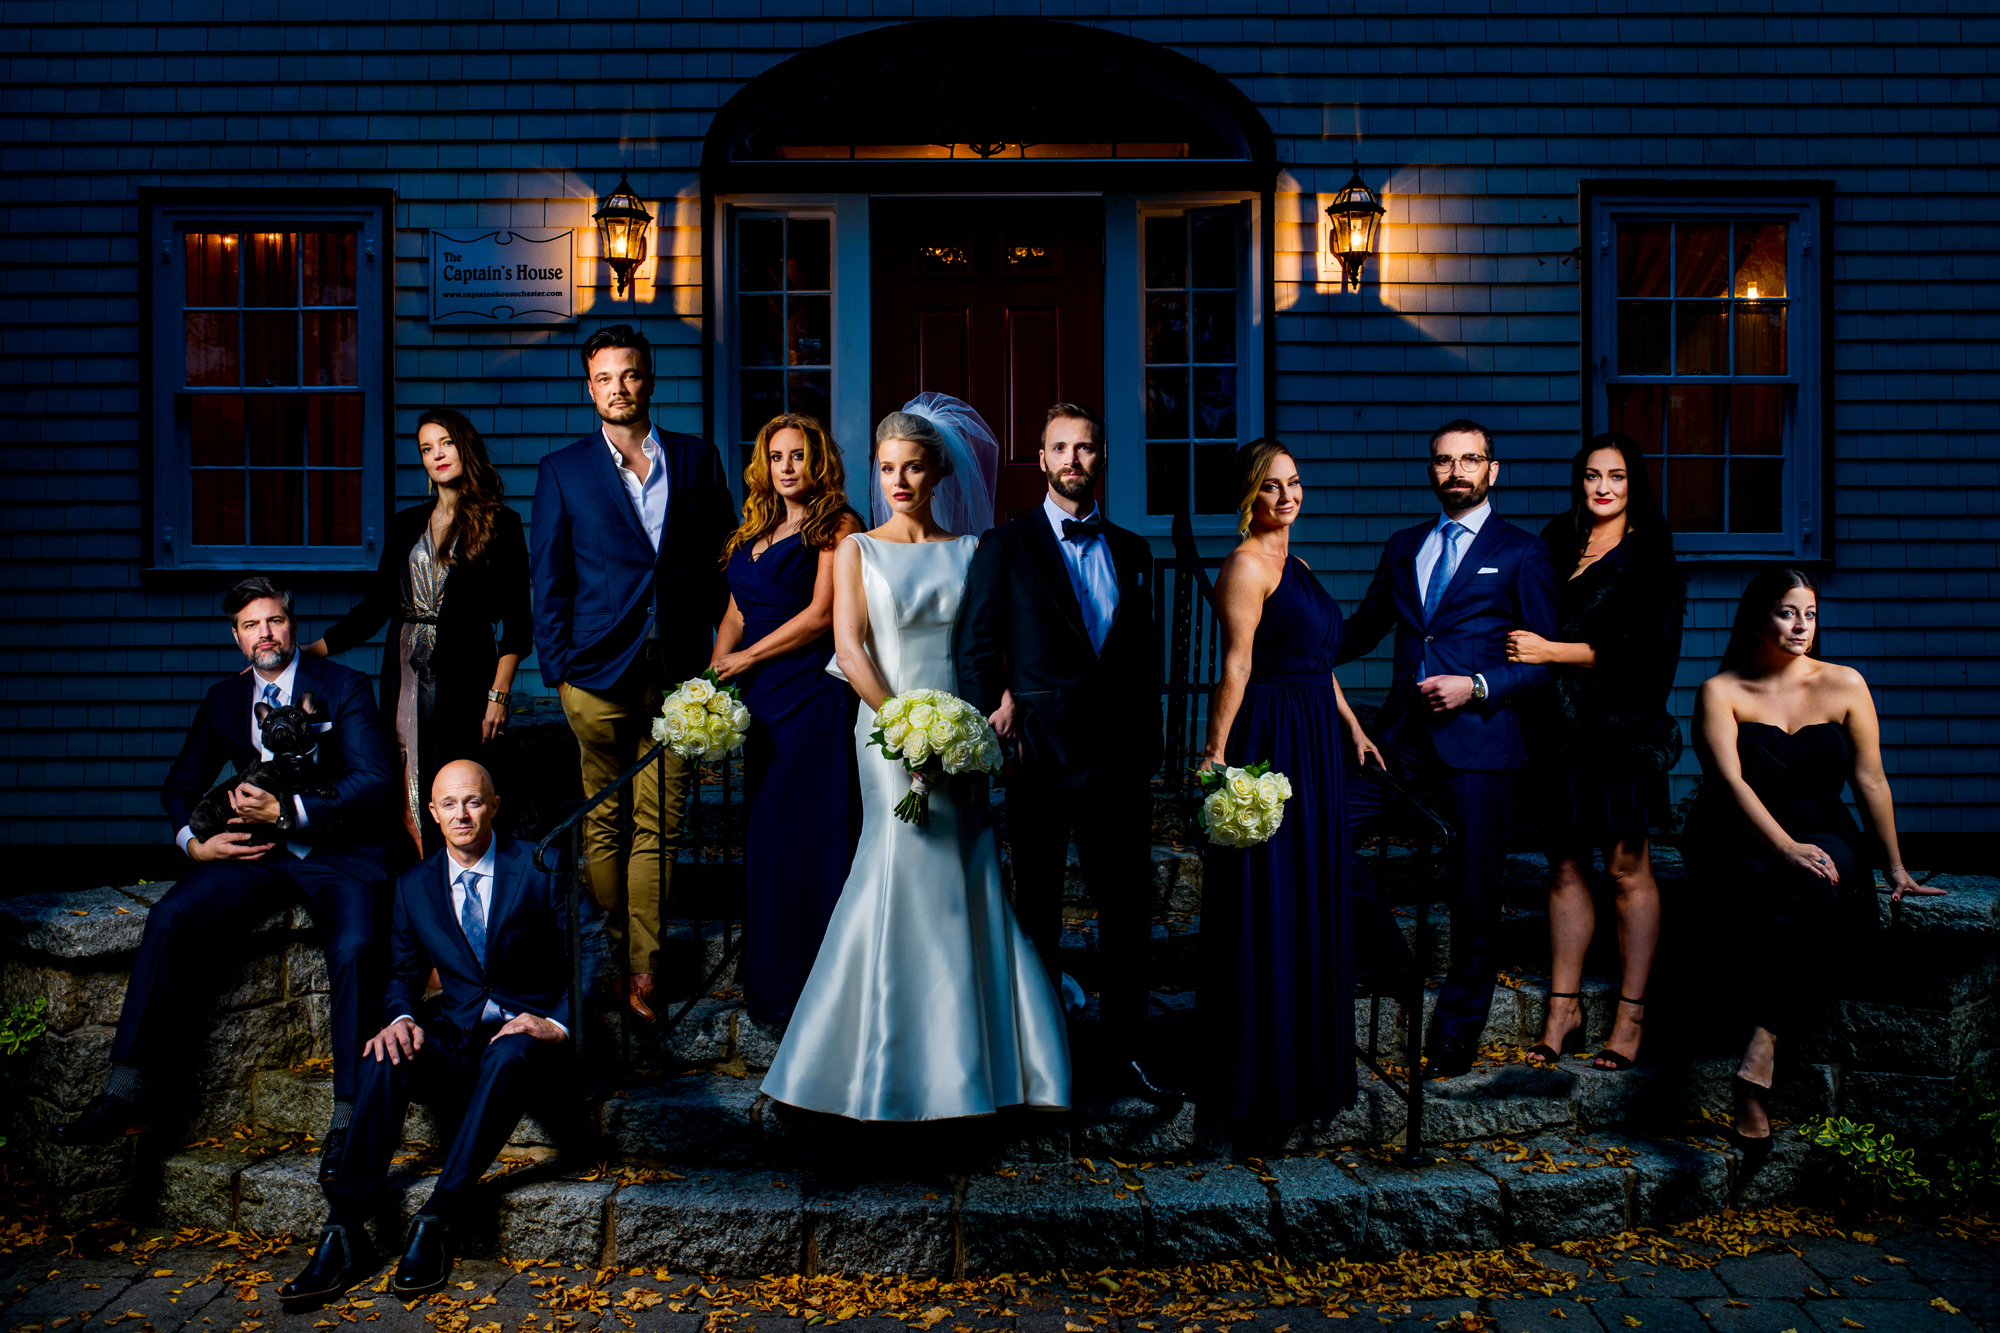 Bridal party in a suite of little black dresses - photographed by Jeff Cooke - Nova Scotia